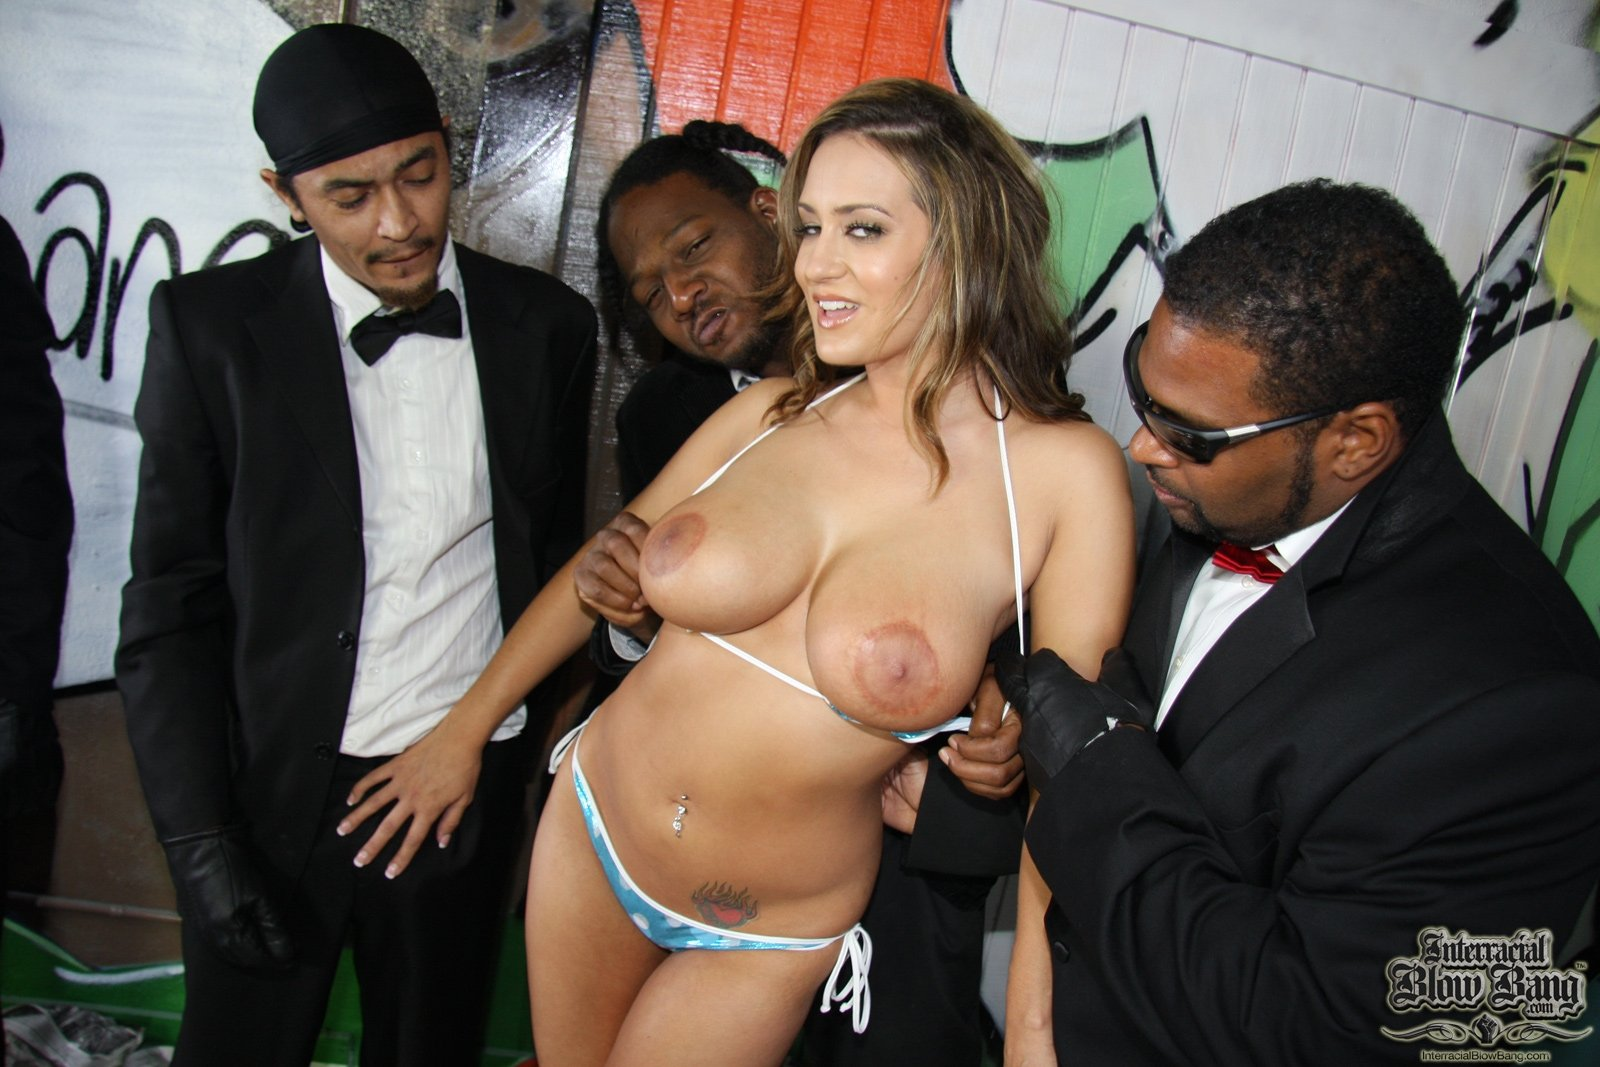 Drunk interracial porn Jav pth nudist